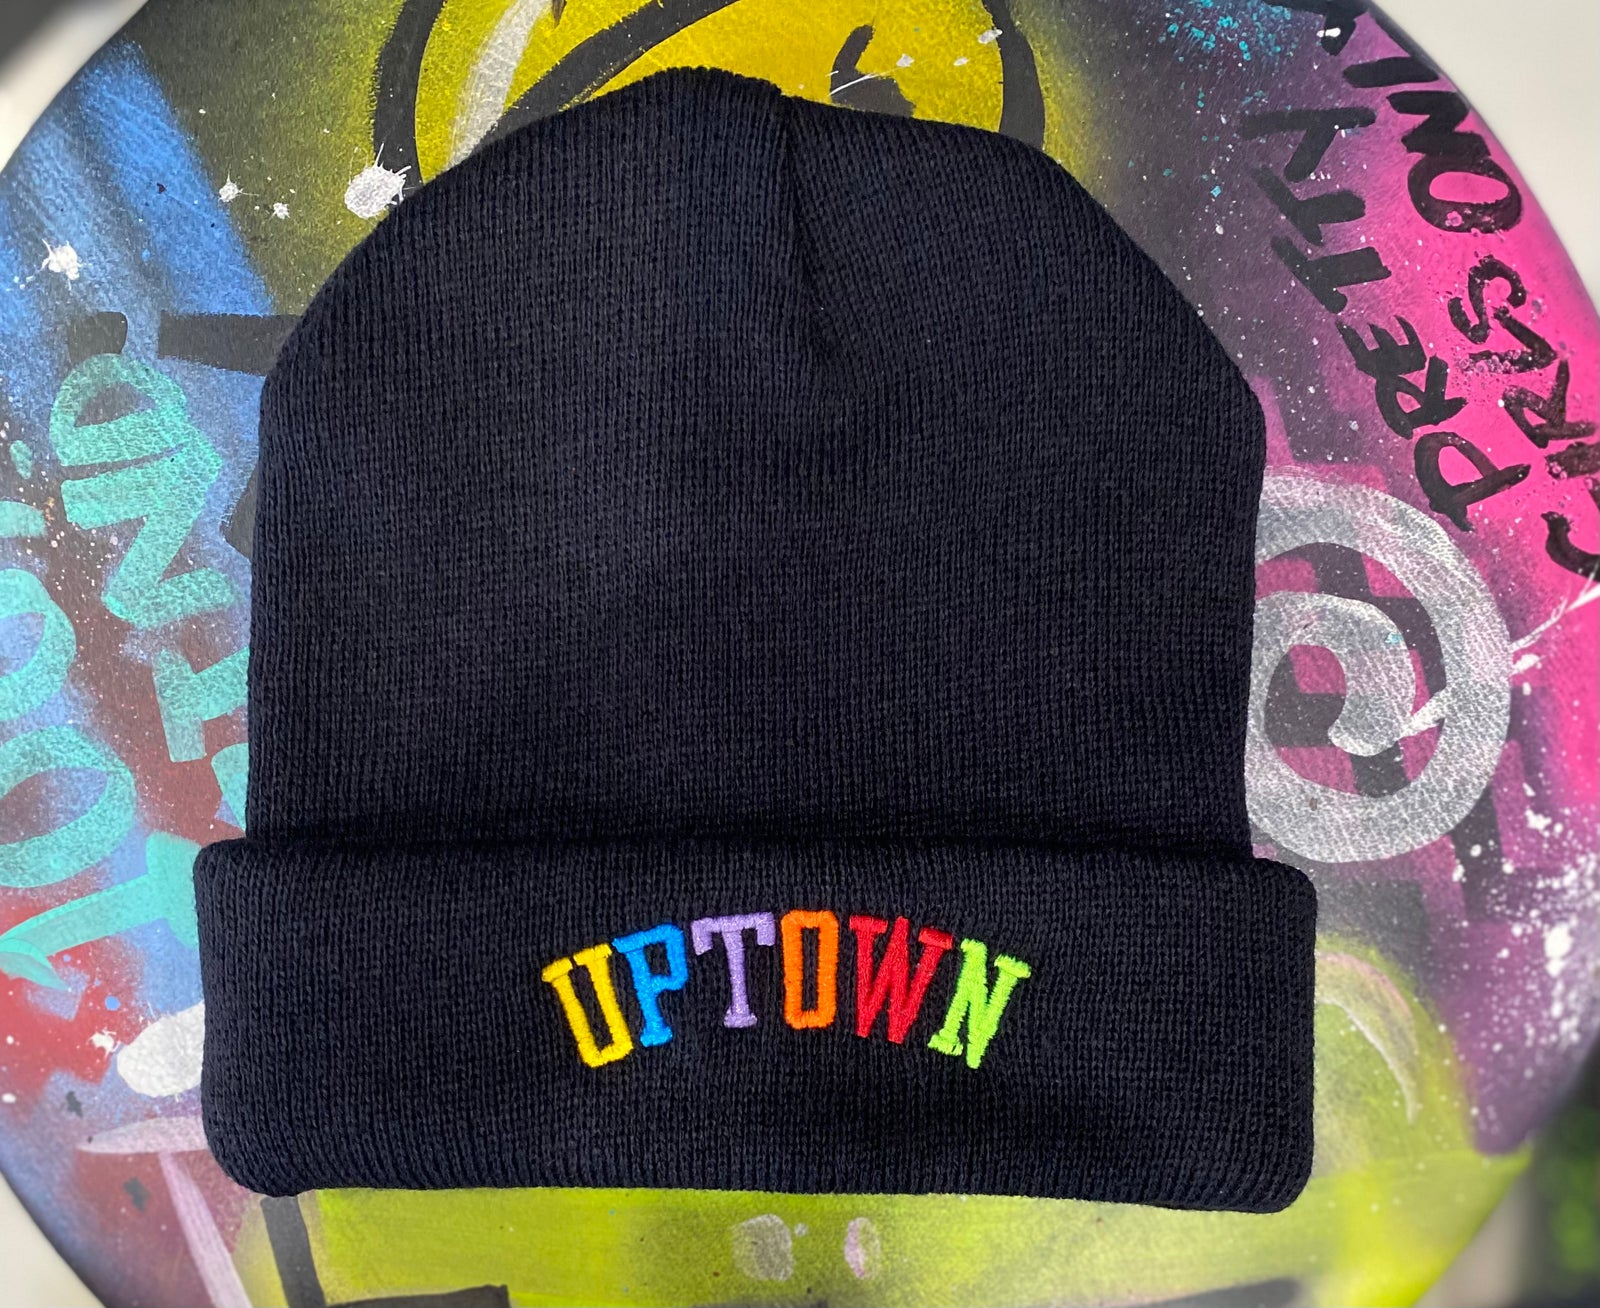 Load image into Gallery viewer, Hood Love Beanie Uptown